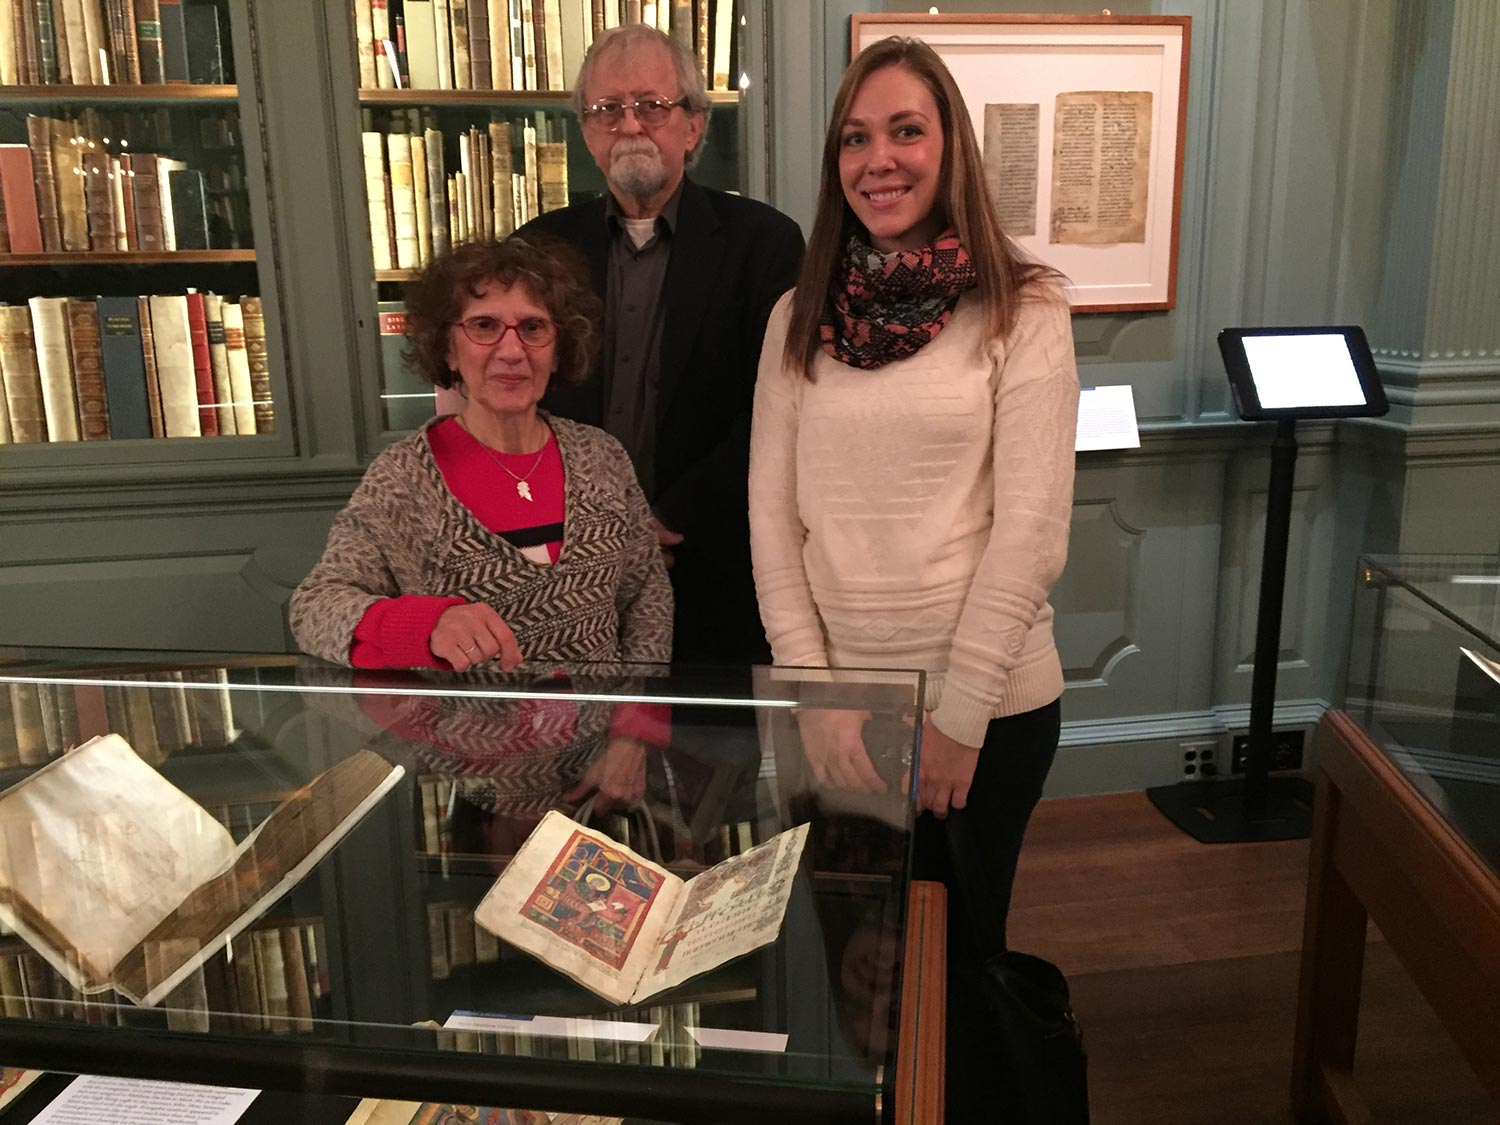 ALMA Curators Gary & Susan Lind-Sinanian and Collections Manager Susanna Fout with the Canon Tables at Houghton Library